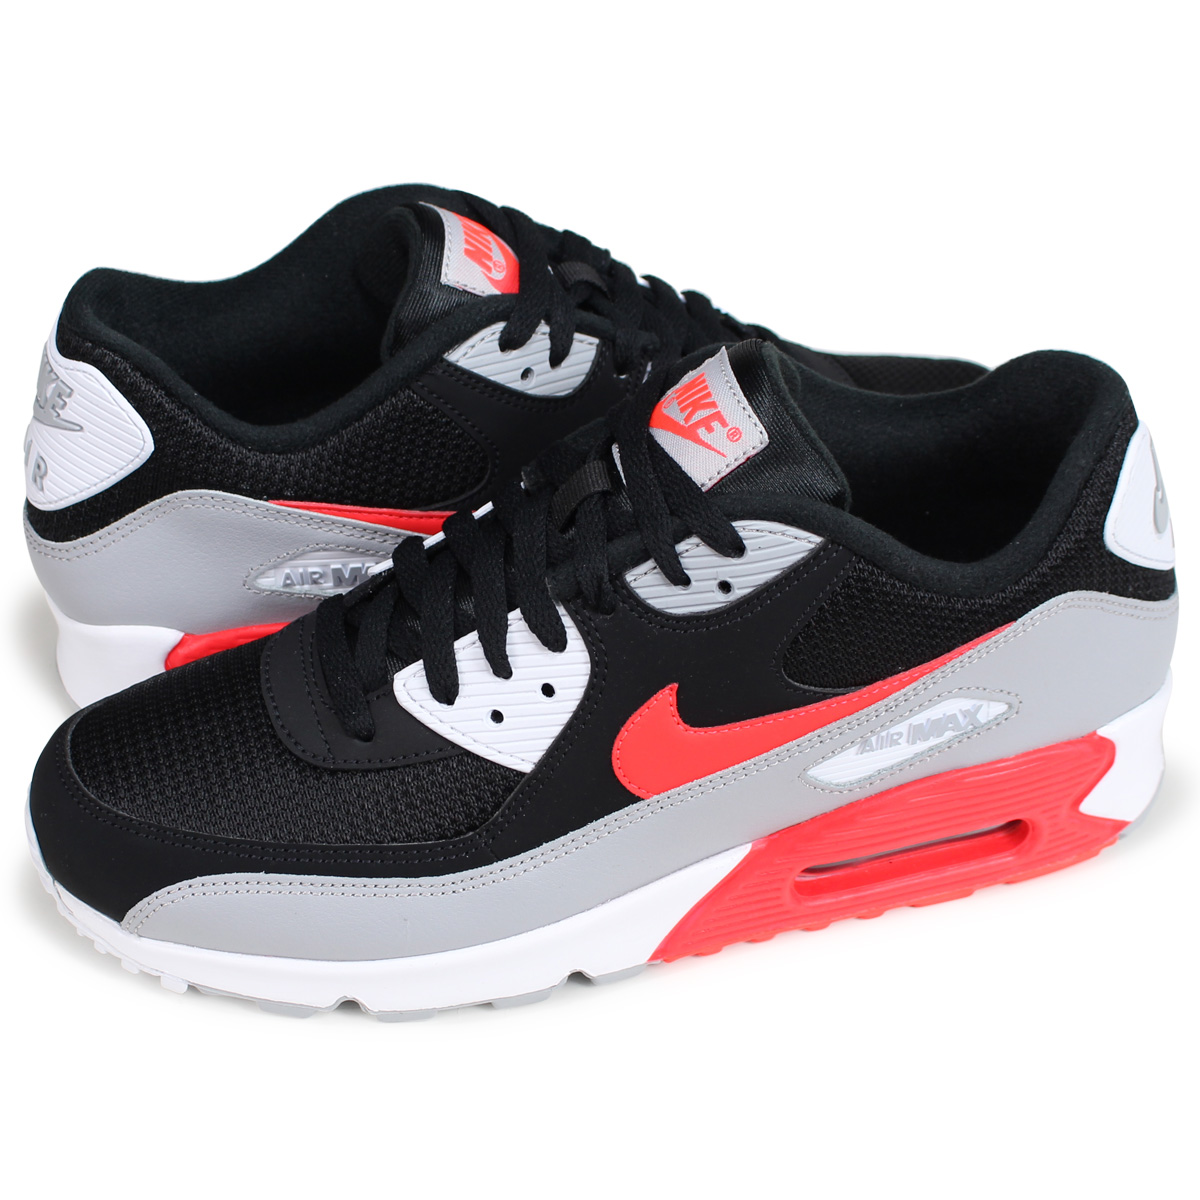 d7e20be478 Whats up Sports: NIKE AIR MAX 90 ESSENTIAL Kie Ney AMAX 90 essential ...